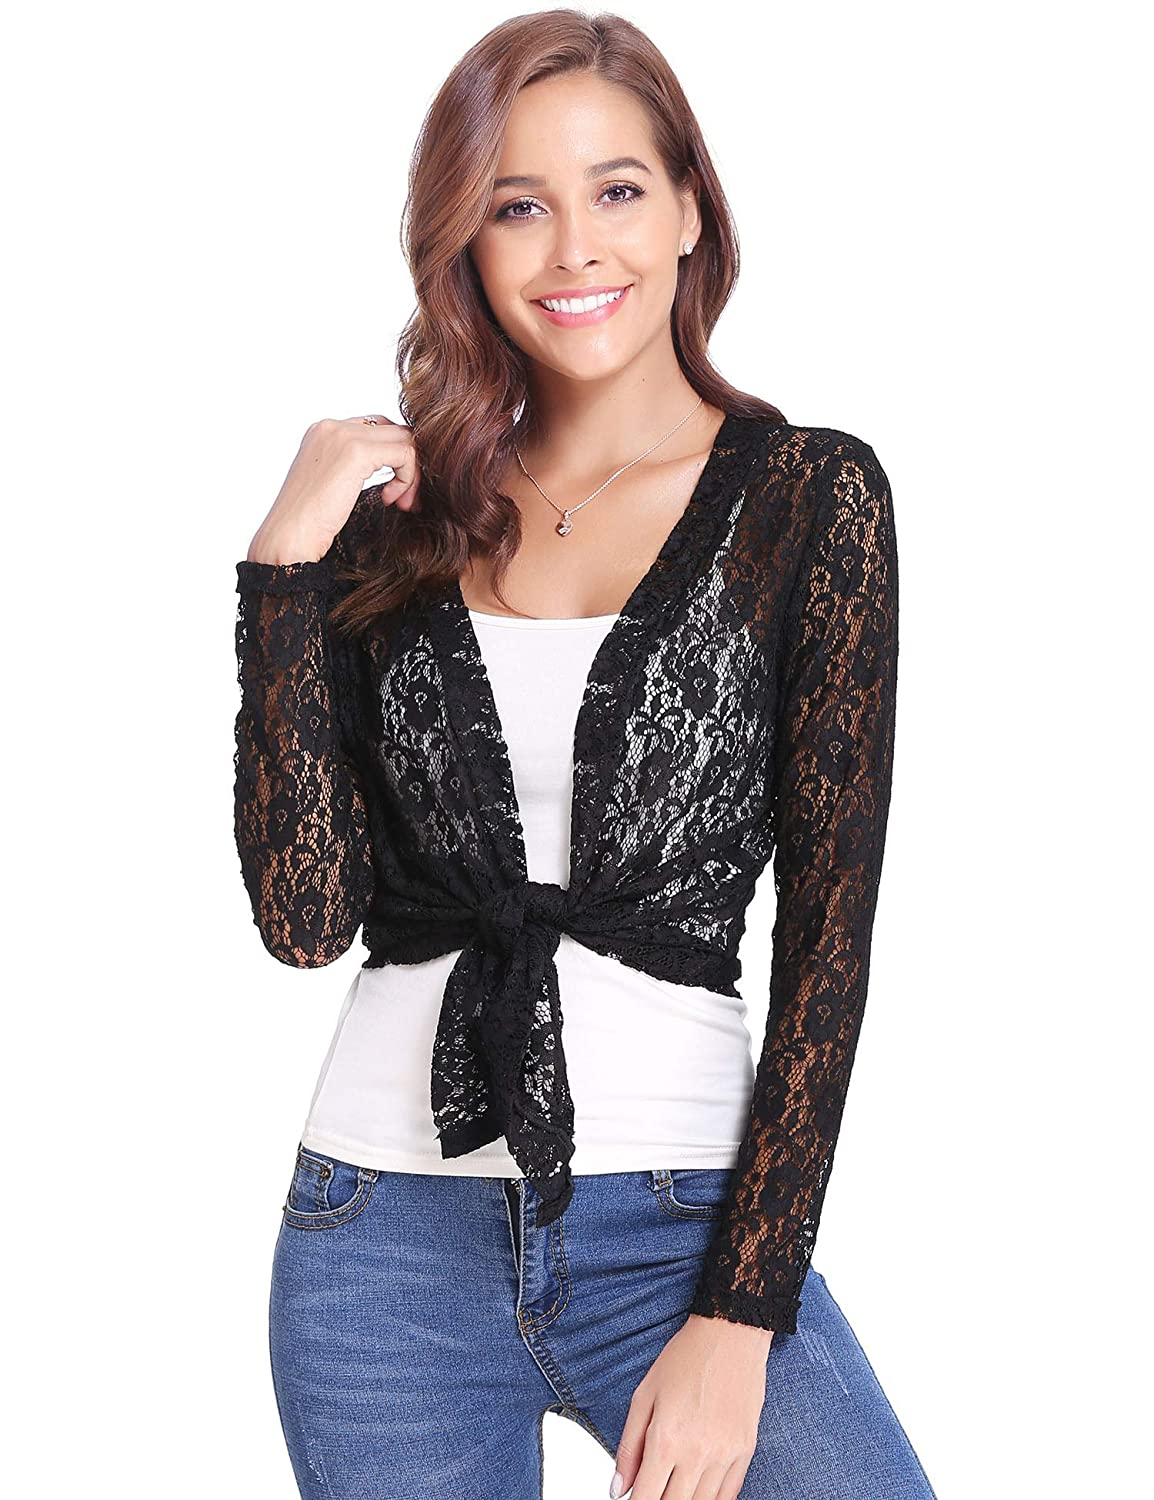 Abollria Womens Shrugs Summer Floral Lace Short Sleeve Open Front Bolero Cardigan